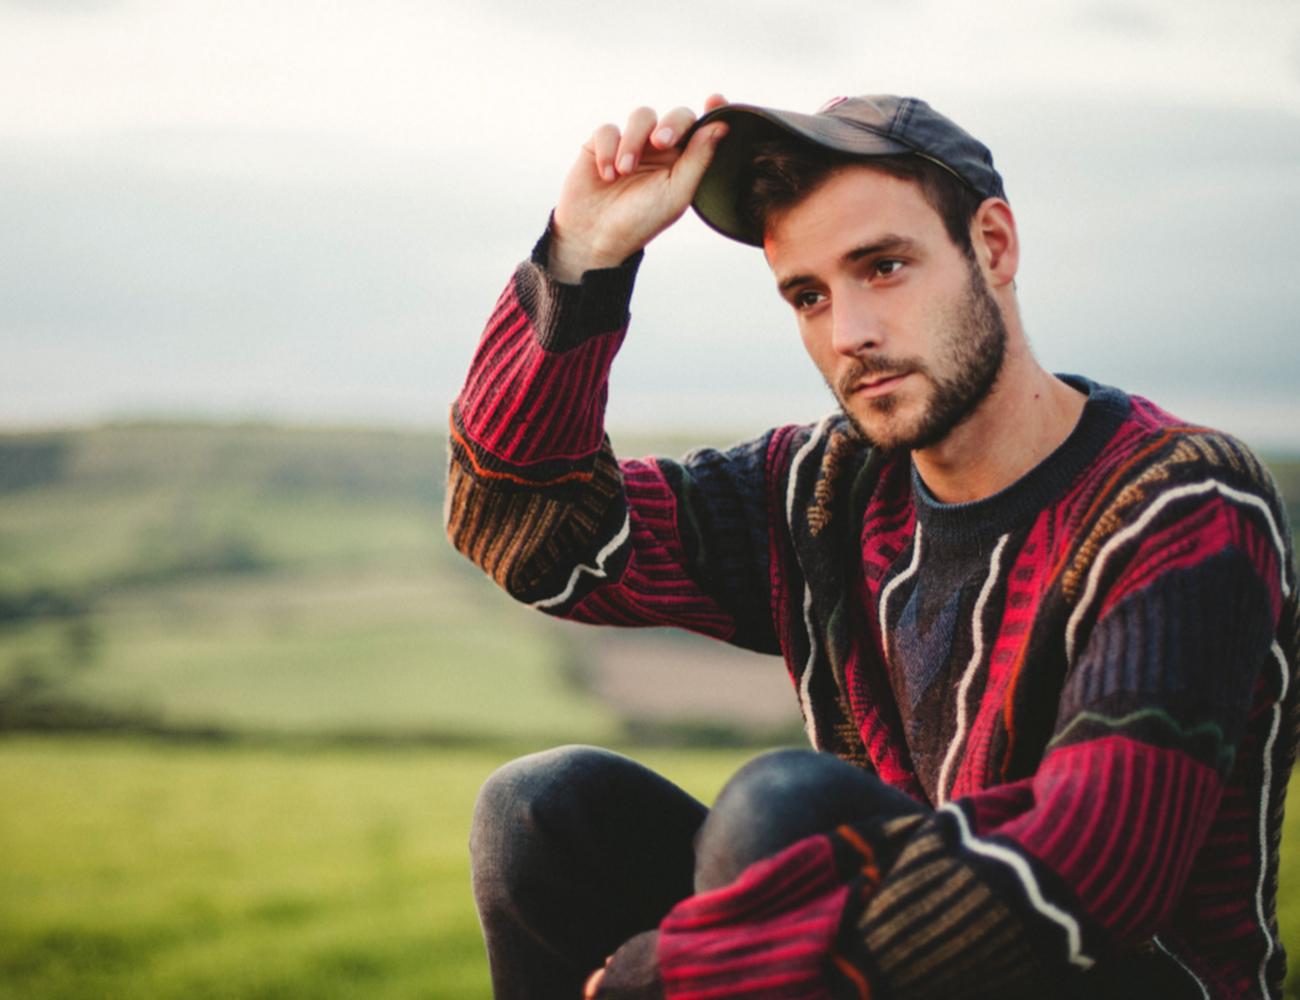 Roo Panes website